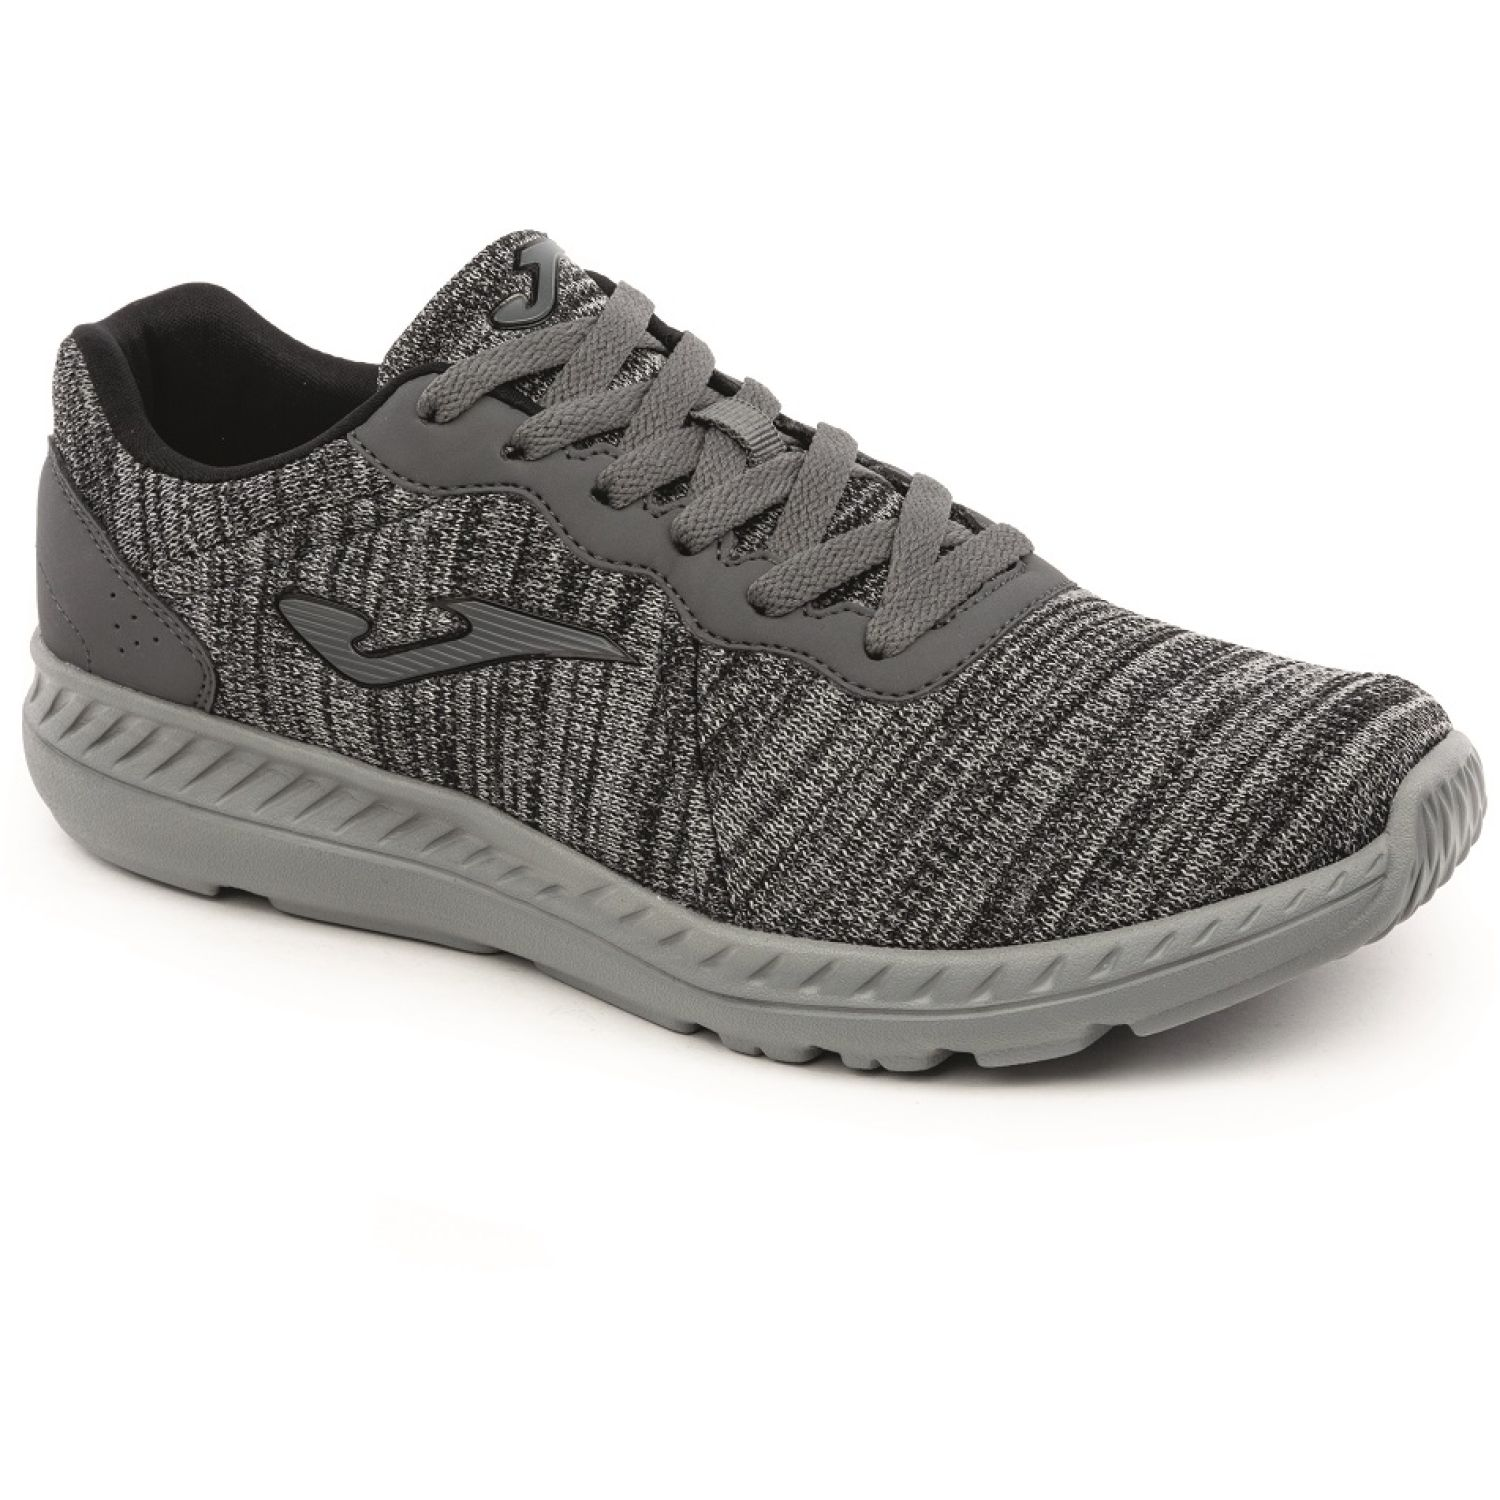 JOMA Confort Psd 922 Gris Hombres